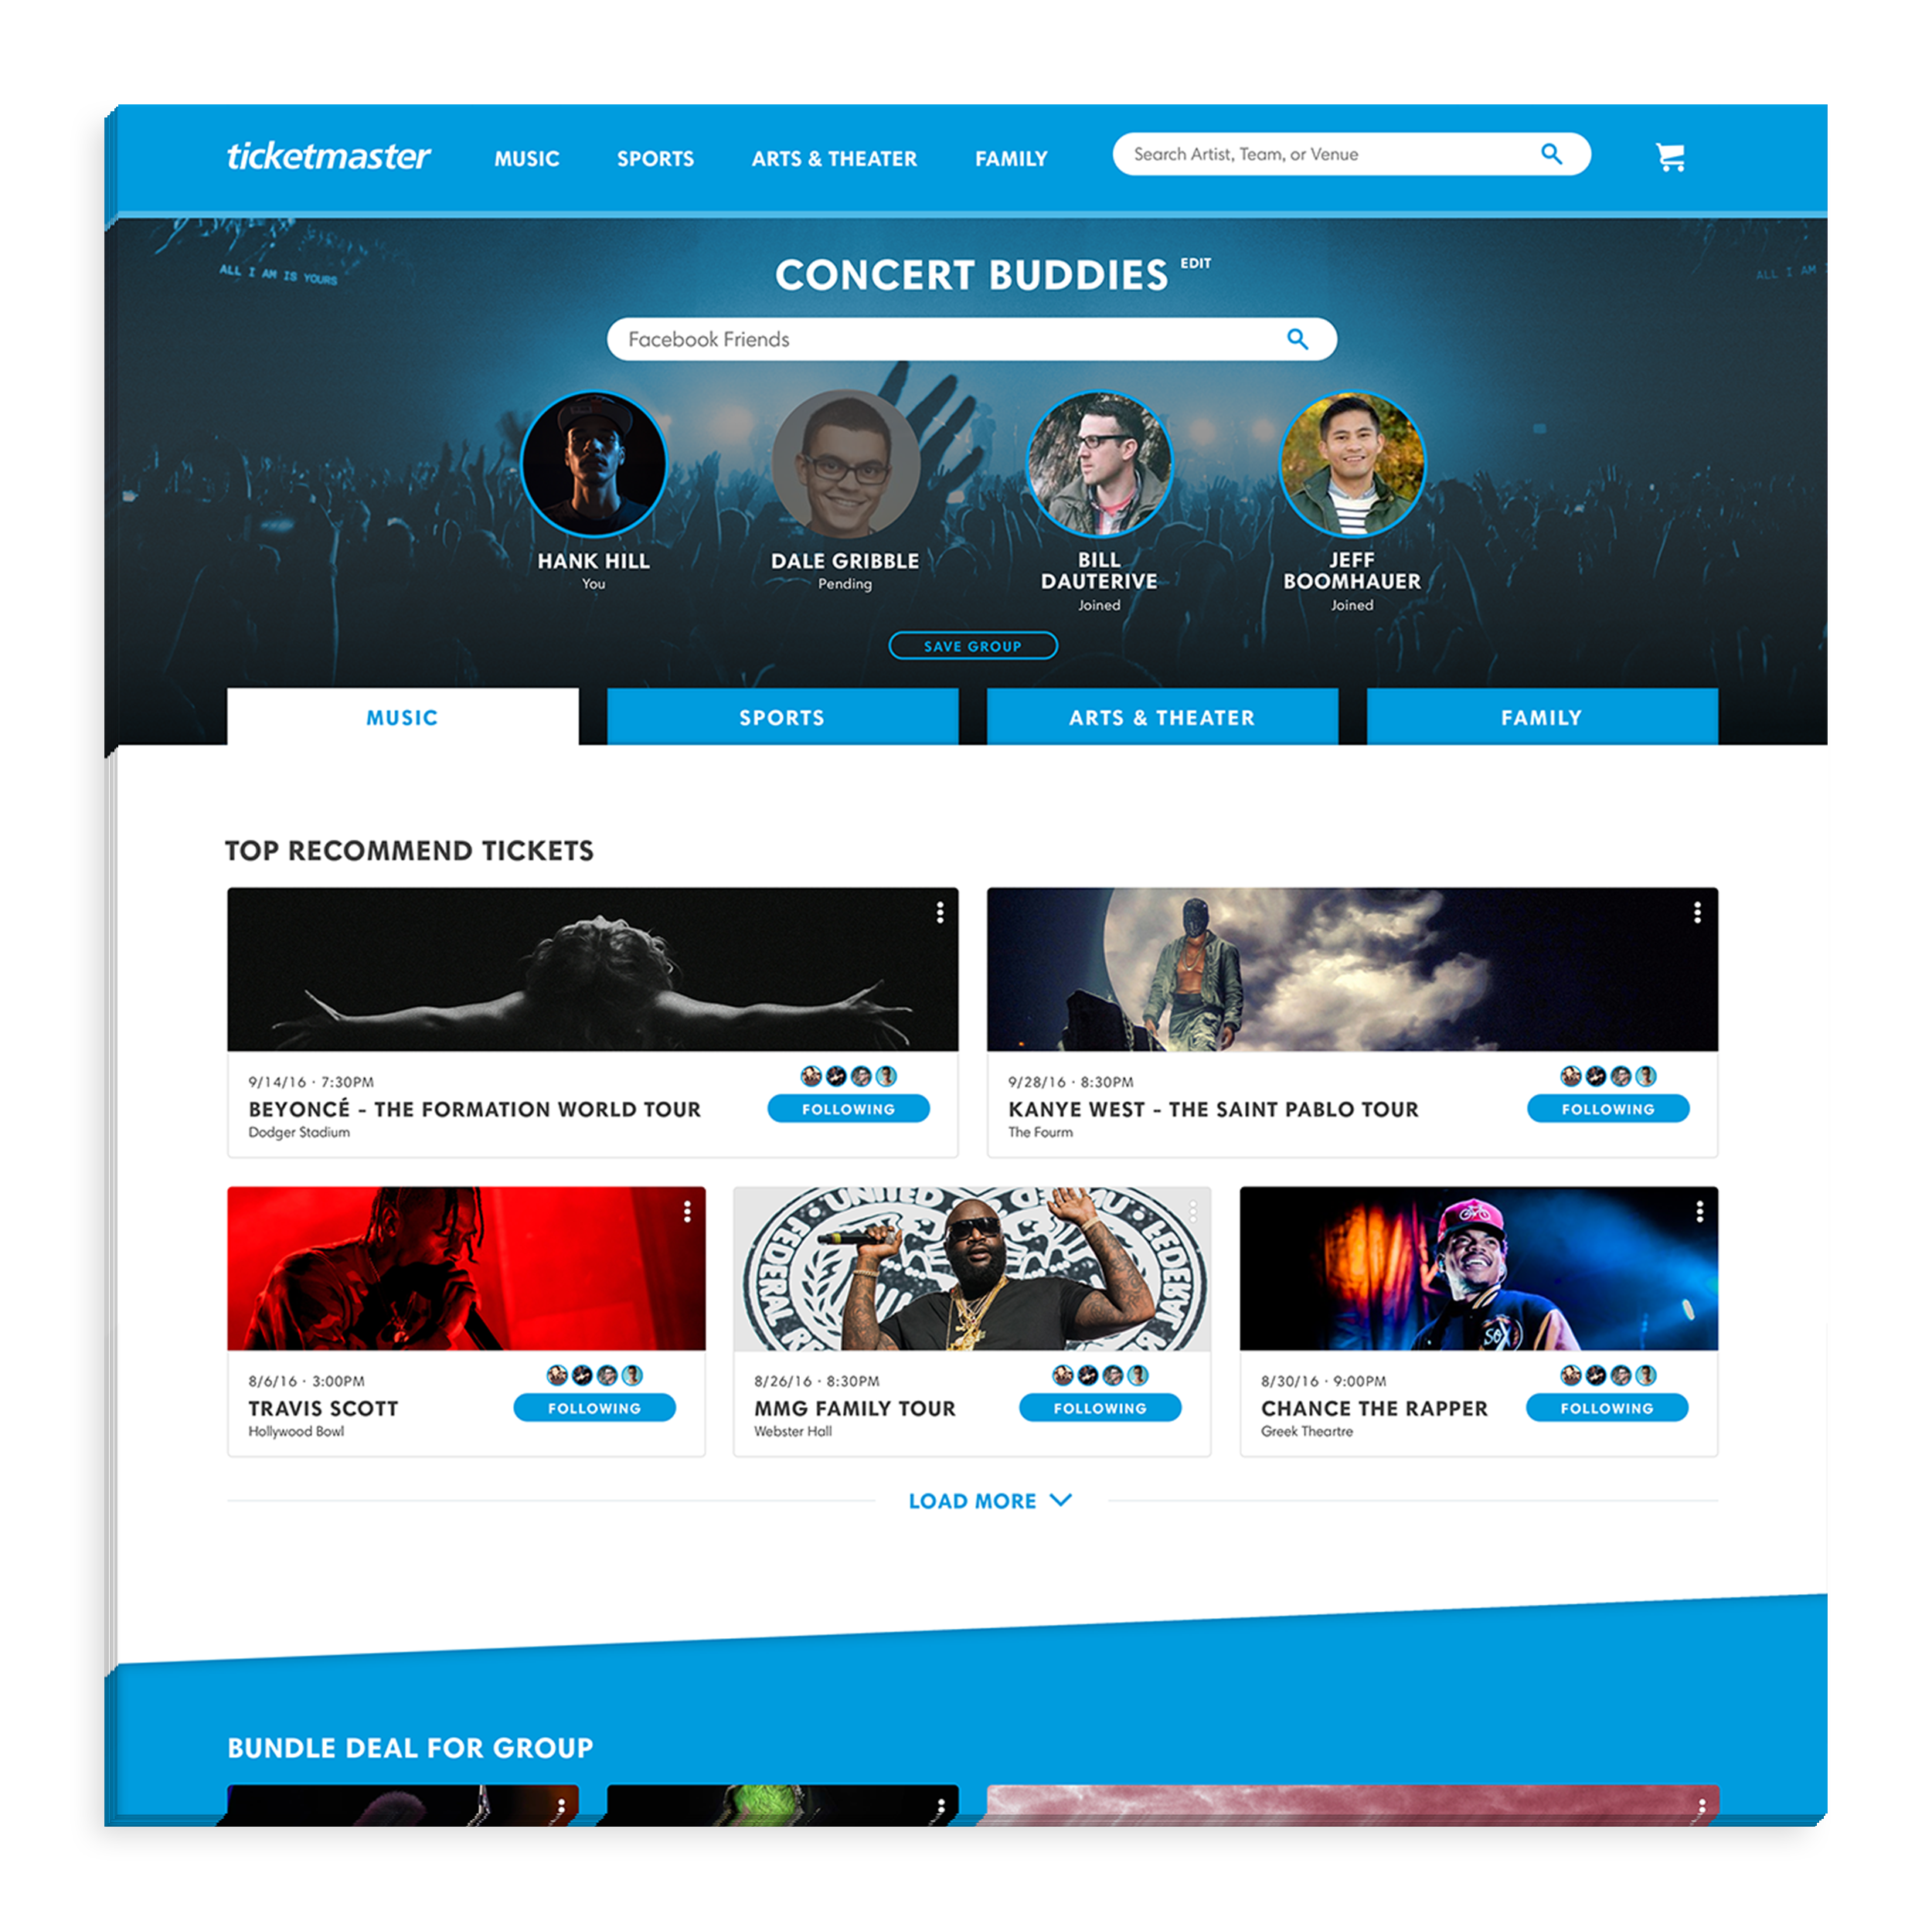 - Users can log in to Ticketmaster through Facebook, which will import their likes and list of friends from the social media platform. Users then can create custom groups, and invite friends to join if they share an interest in attending an event together.